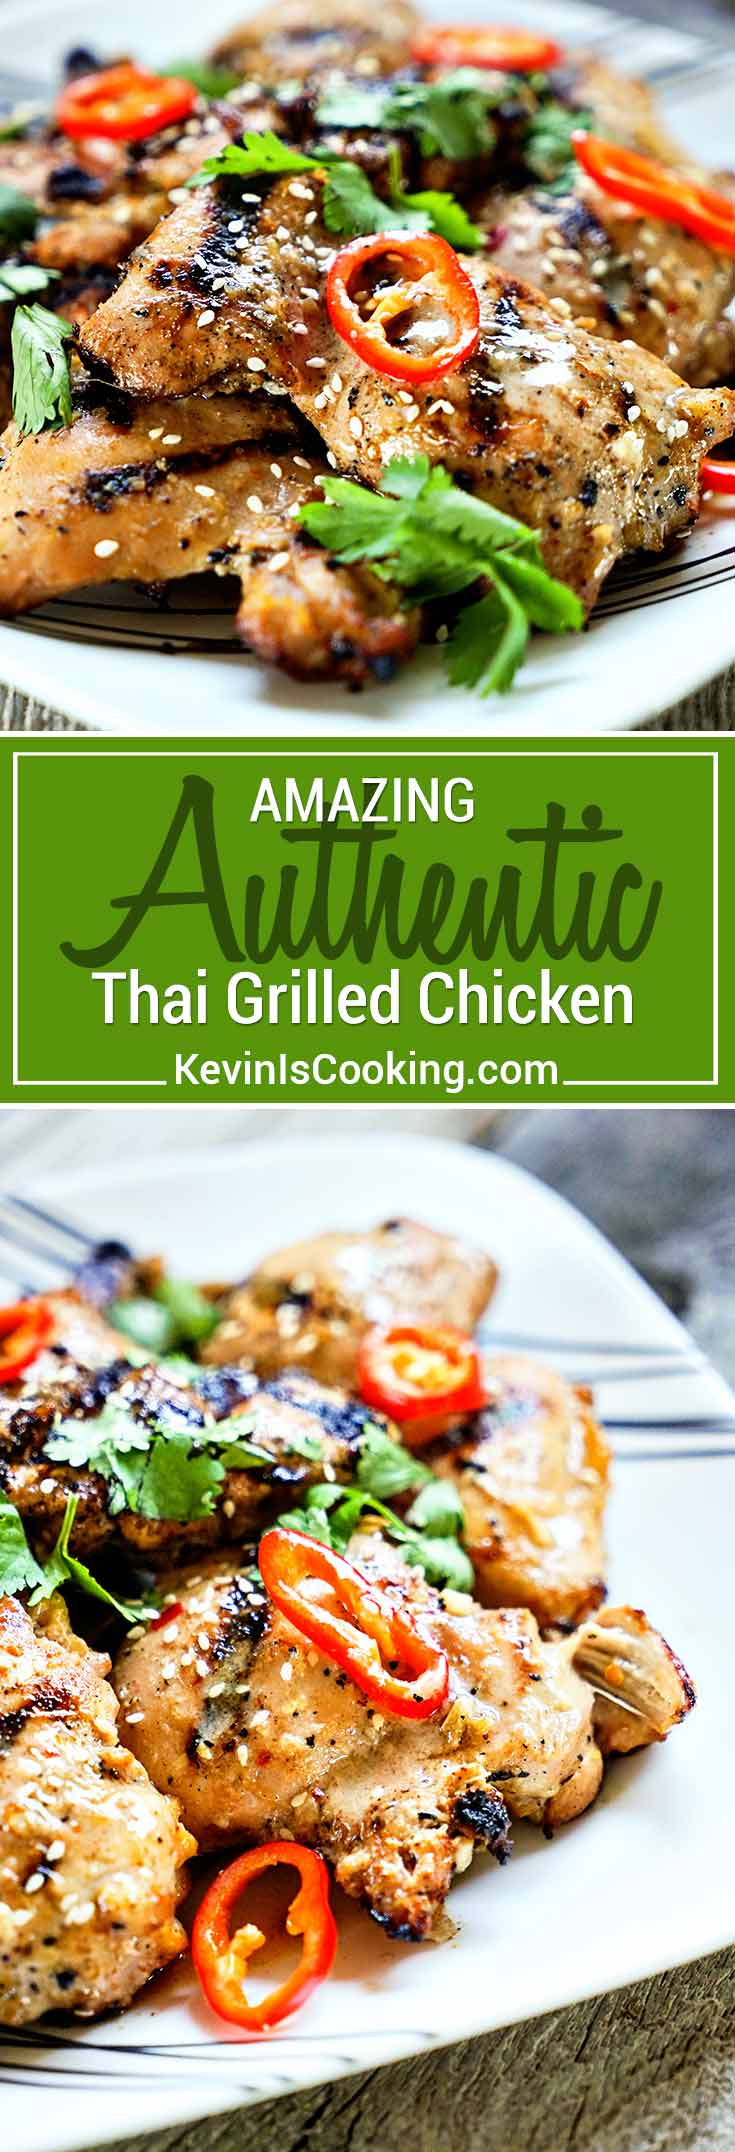 Tasty, authentic Thai street food anyone? This Amazing Thai Grilled Chicken delivers BIG time on flavor using fresh lemongrass and fish sauce in the marinade.